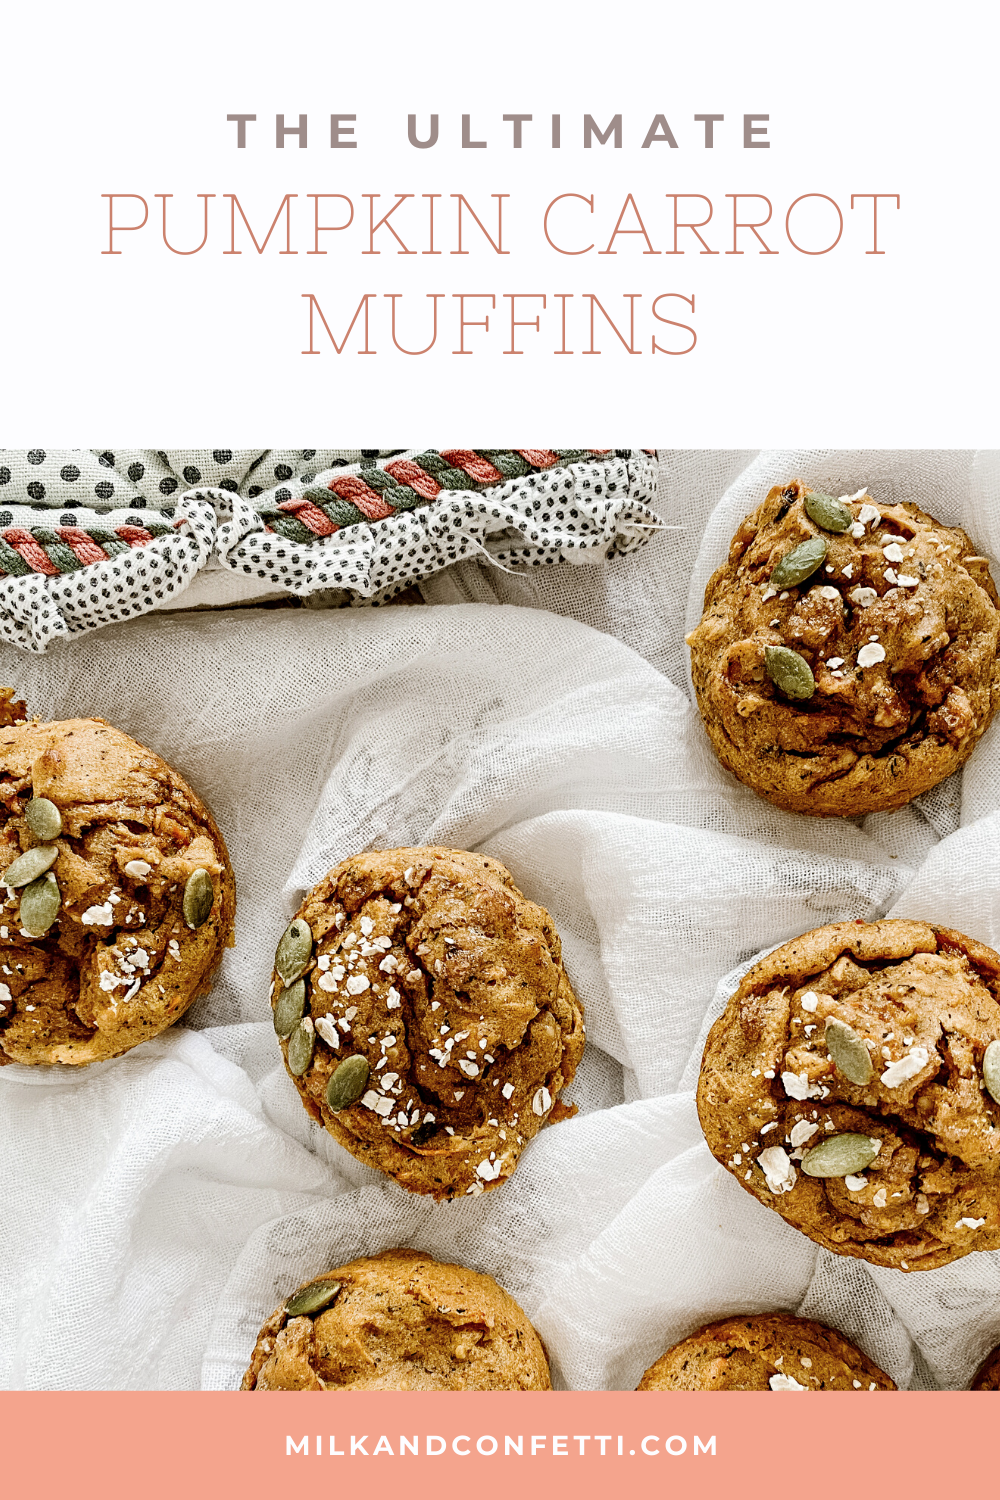 A bunch of carrot and pumpkin muffins sit on a white linen table cloth.